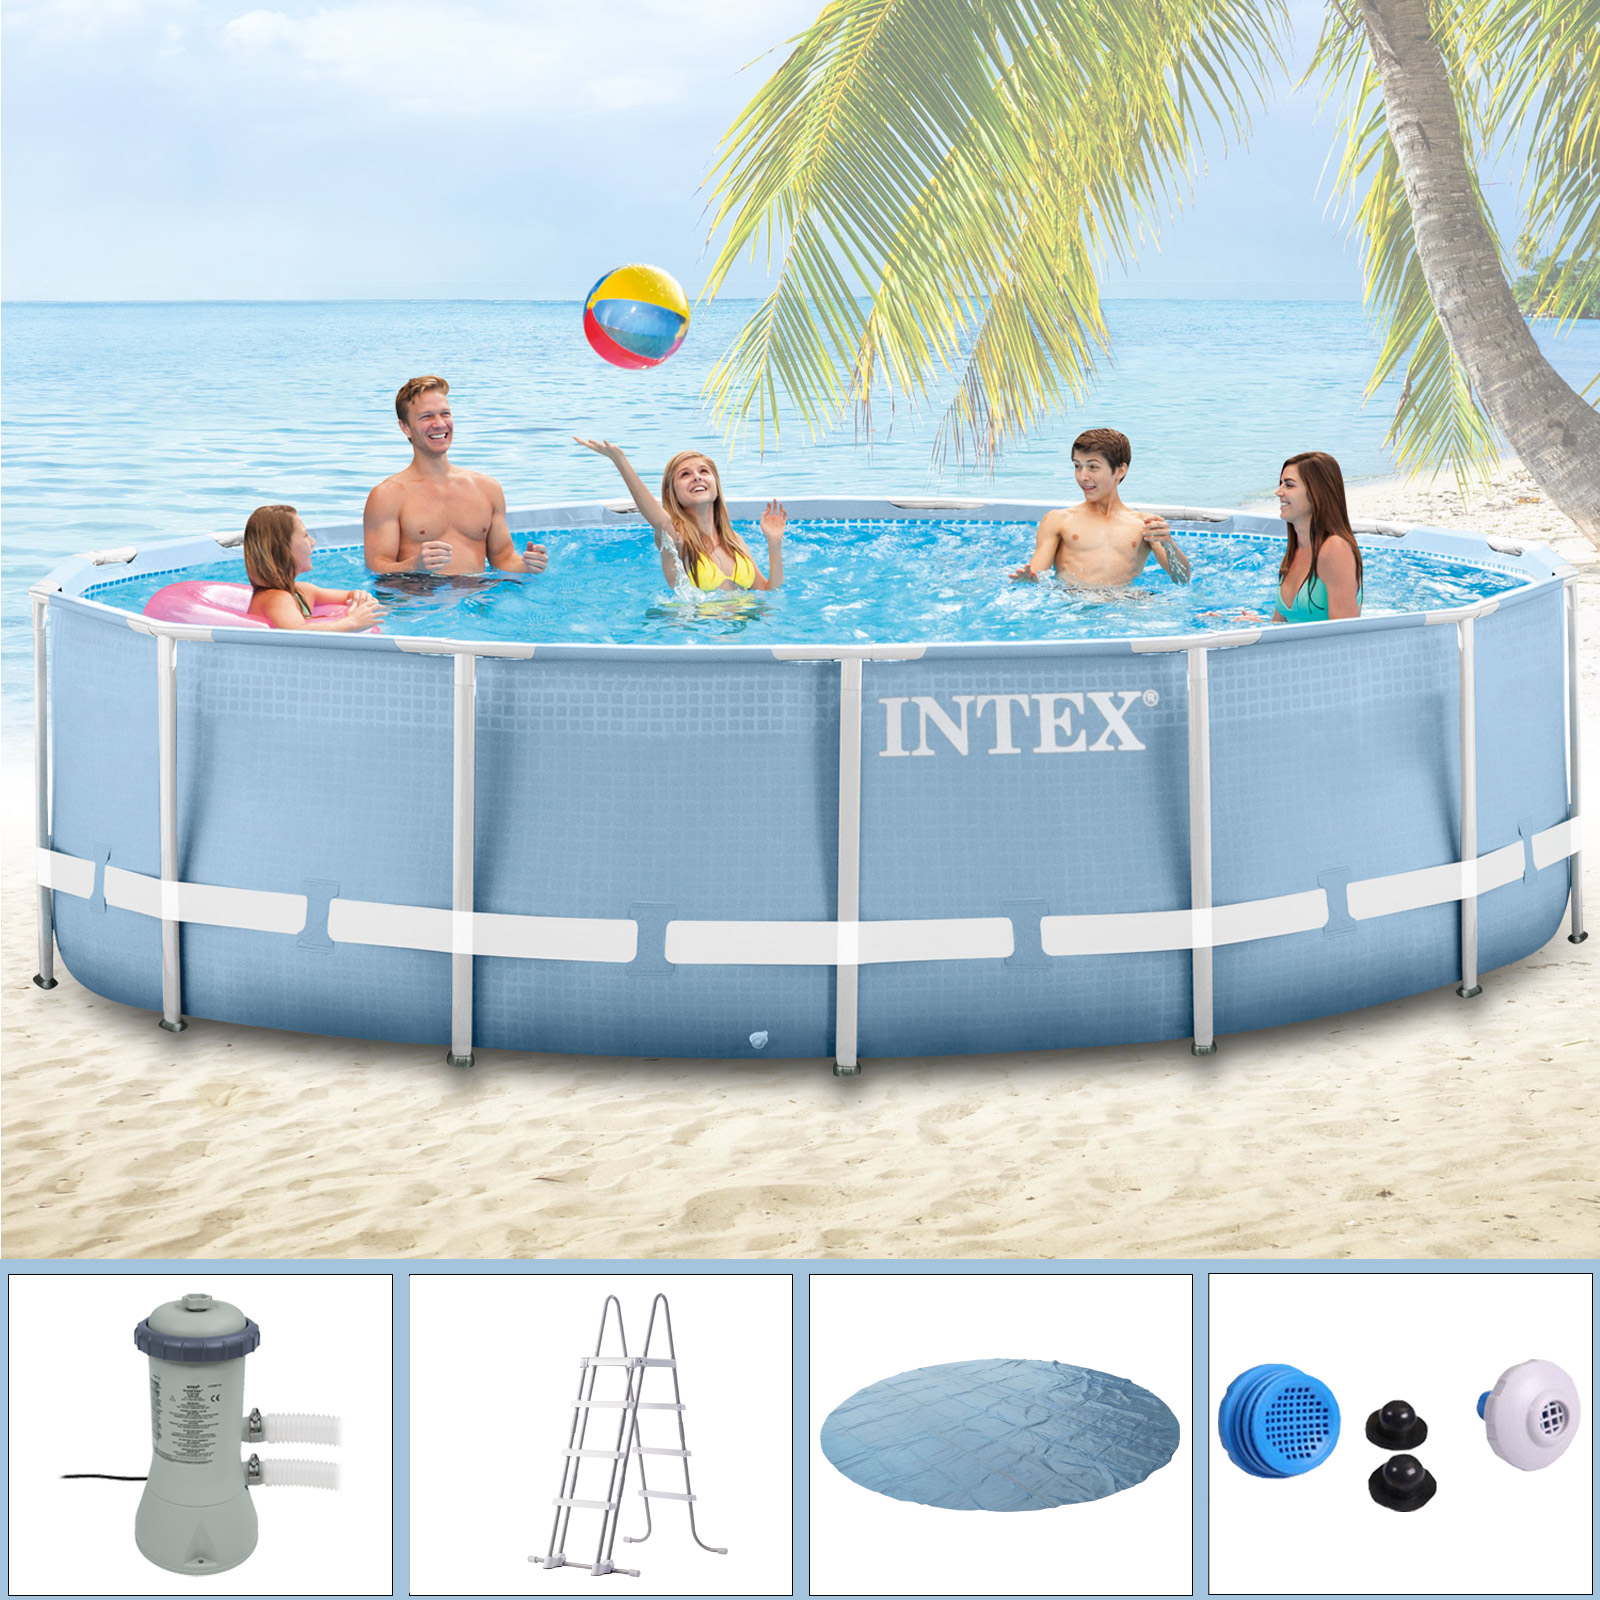 Intex swimming pool frame 457x122 cm mit pumpe leiter for Pool aufblasbar mit pumpe